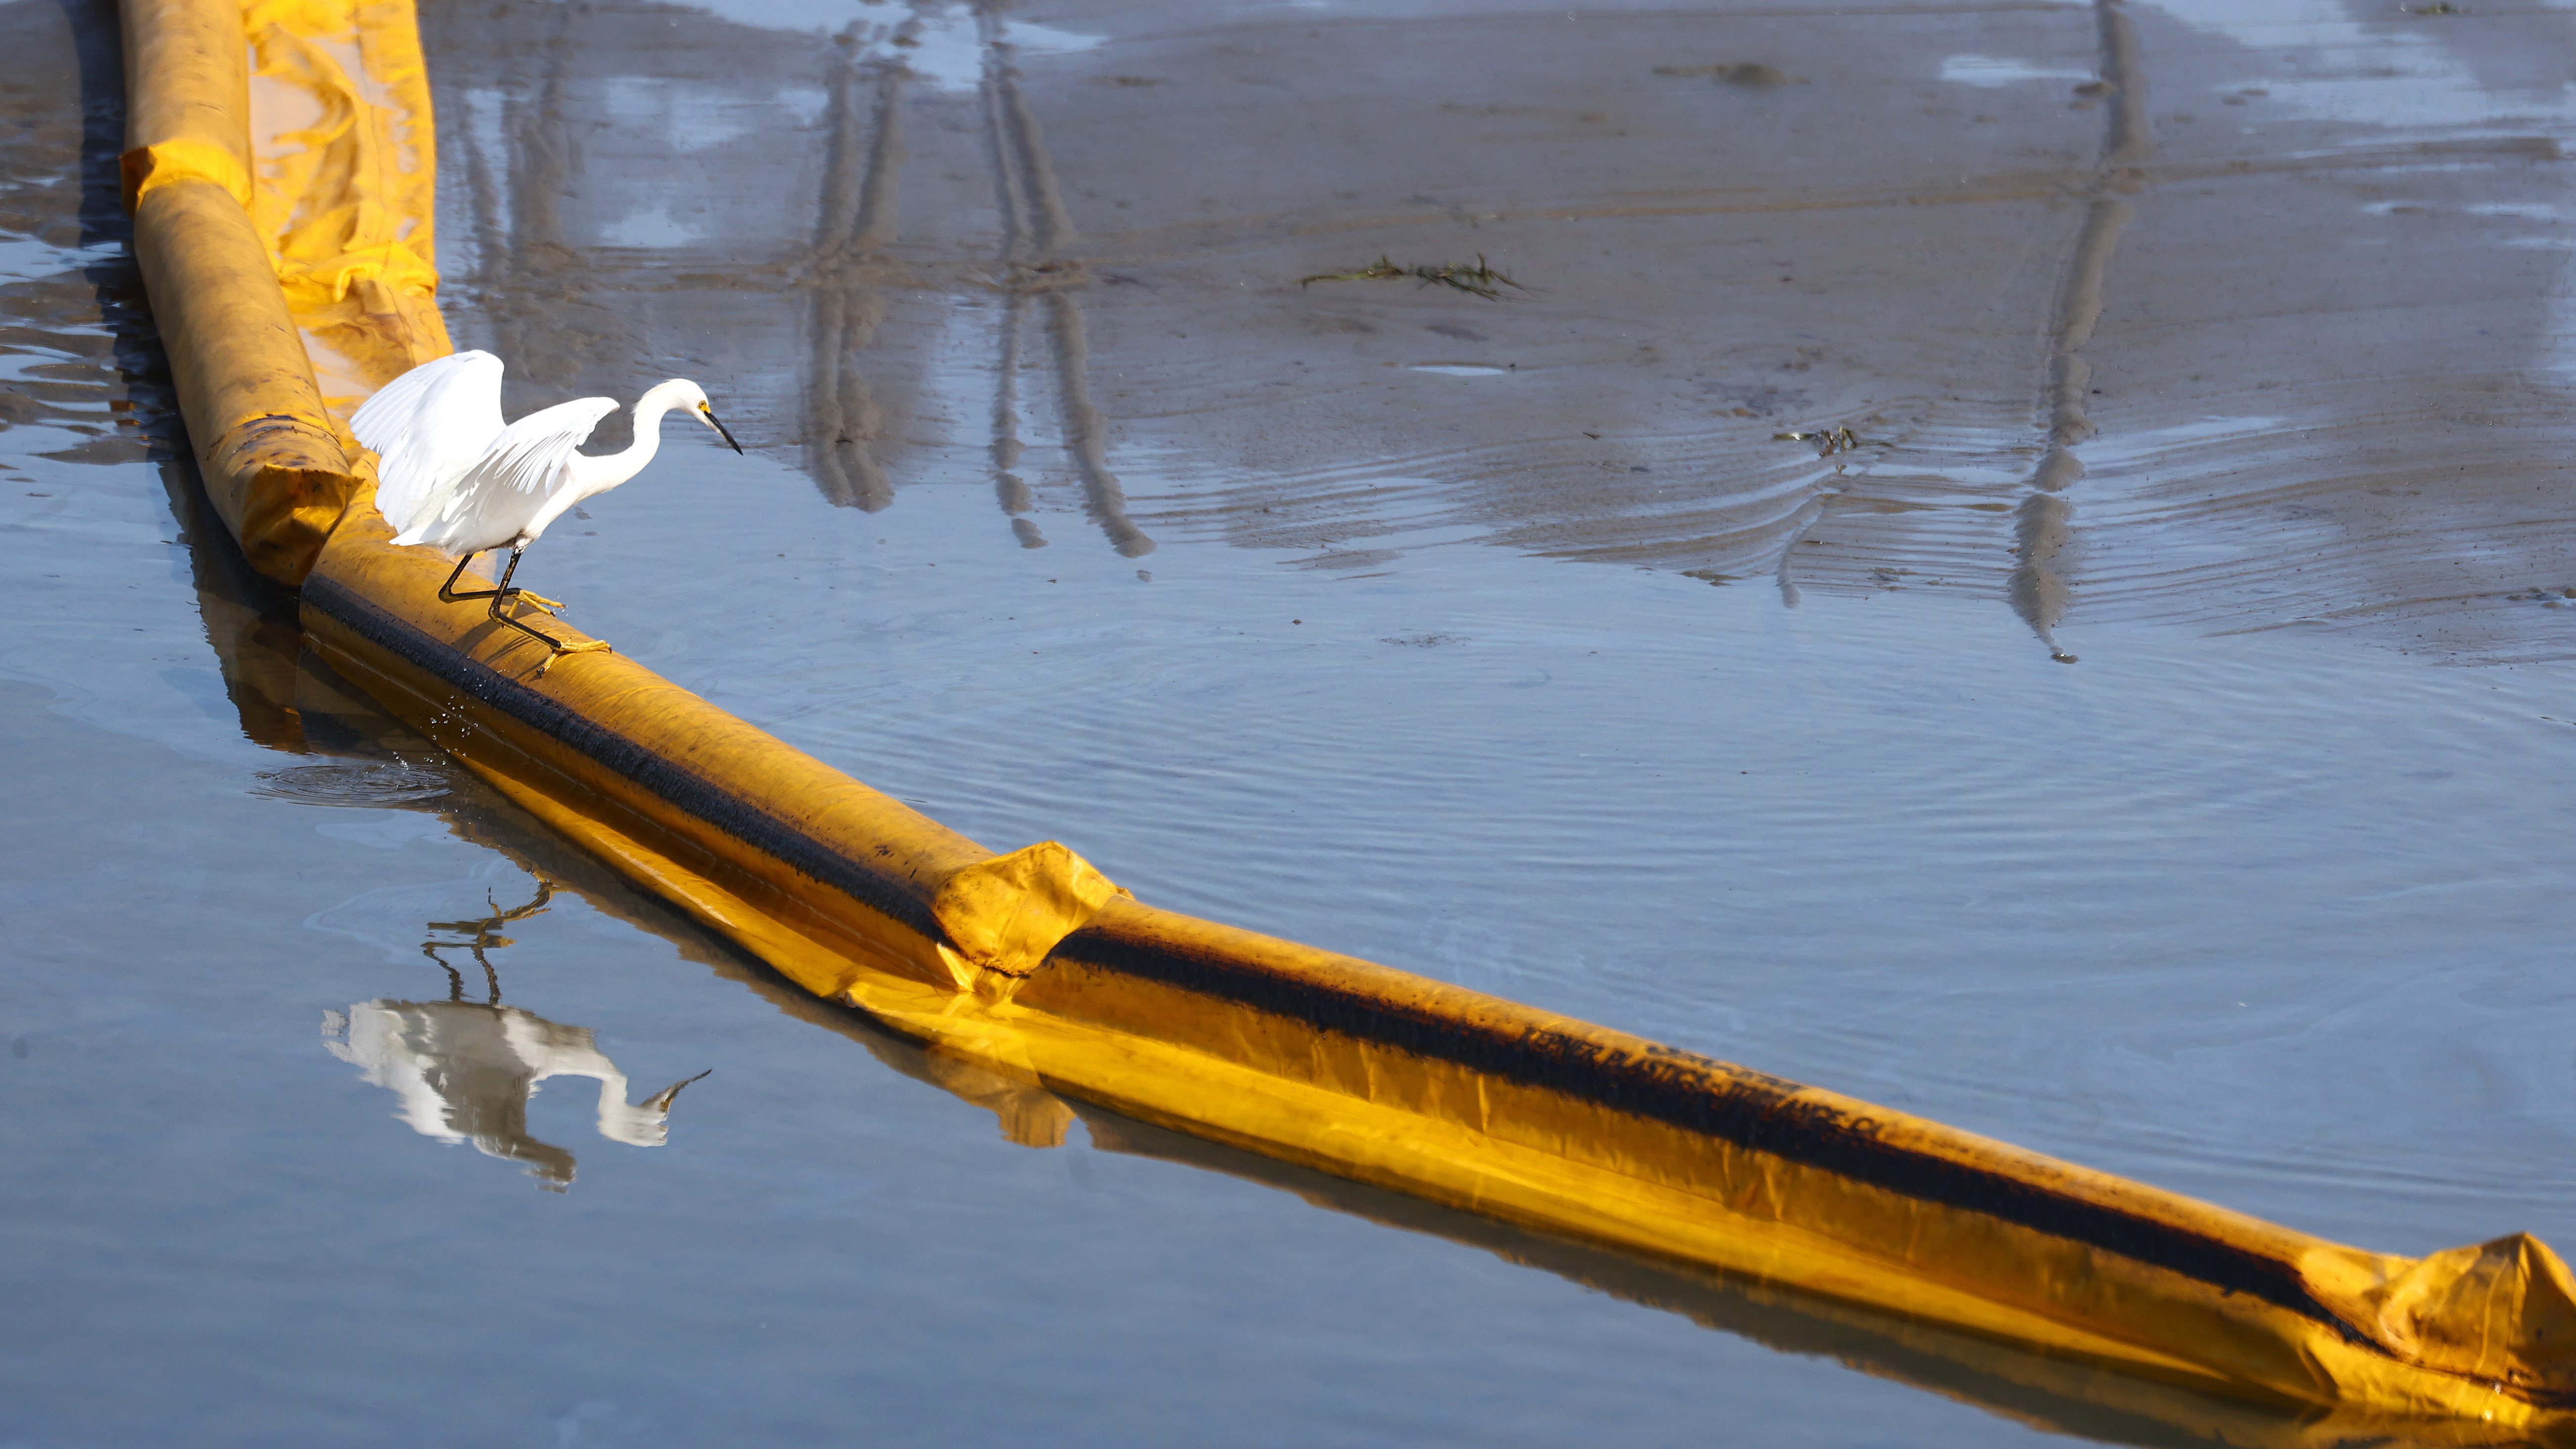 A bird balances on a temporary floating barrier used to contain oil that seeped into Talbert Marsh, home to about 90 bird species, after a 126,000-gallon oil spill off the coast of Huntington Beach, Calif., over the weekend.